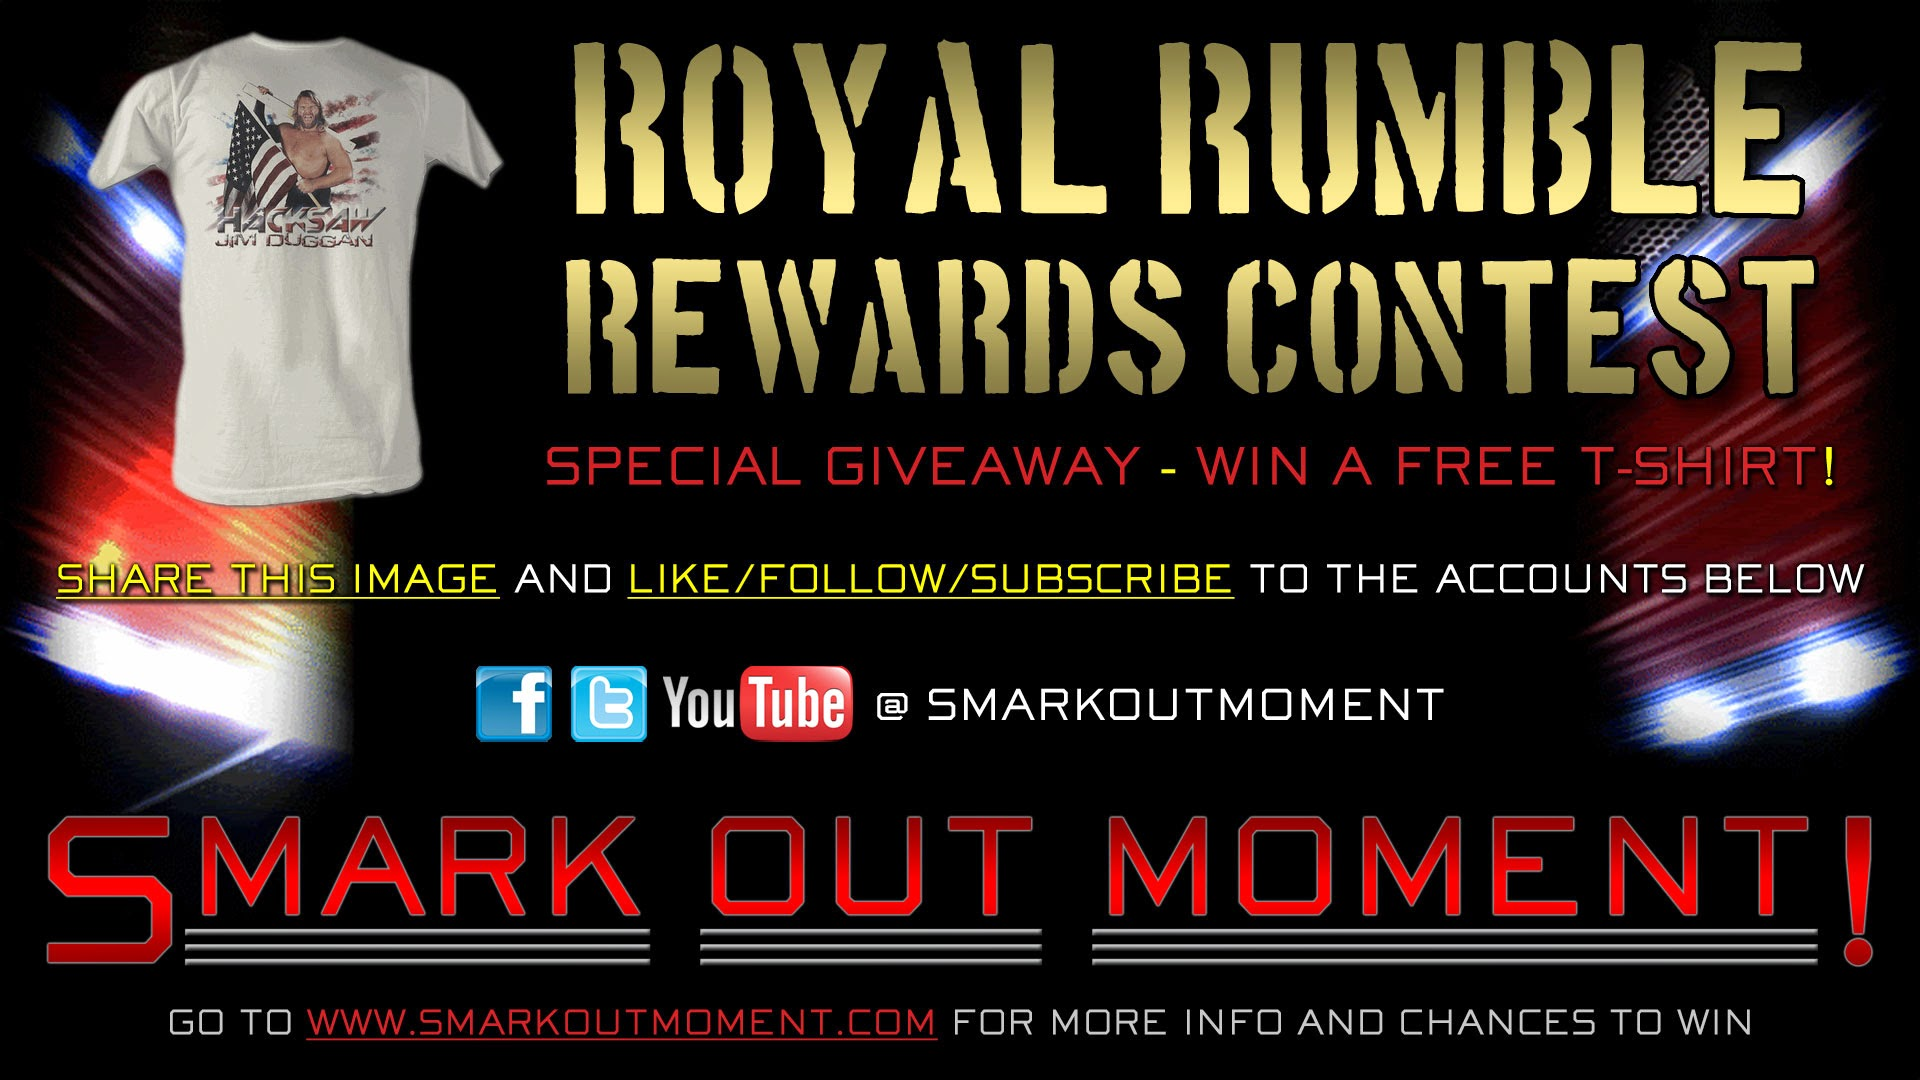 win a free Royal Rumble t-shirt by subscribing to Smark Out Moment